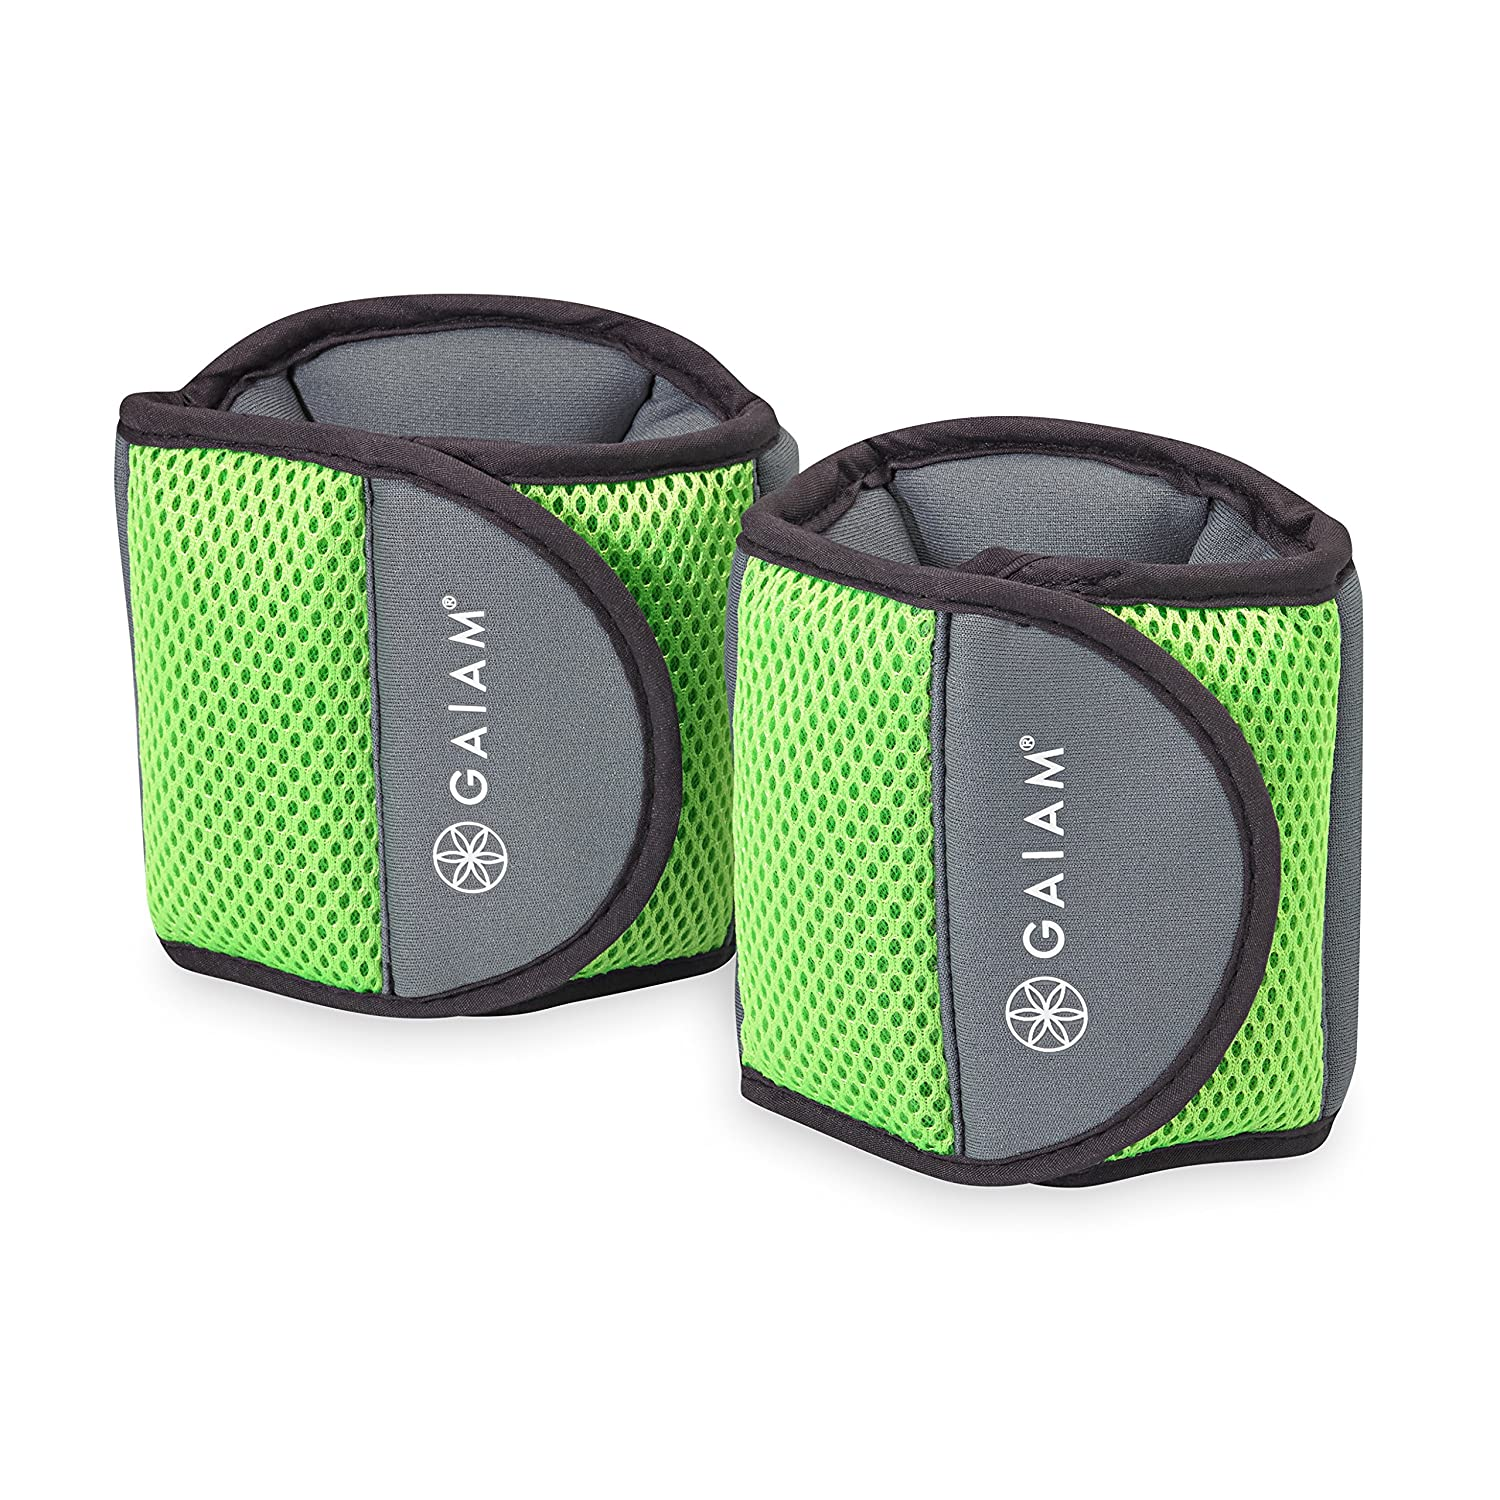 Gaiam Fitness Ankle Weights (5lb Set) 05-62327